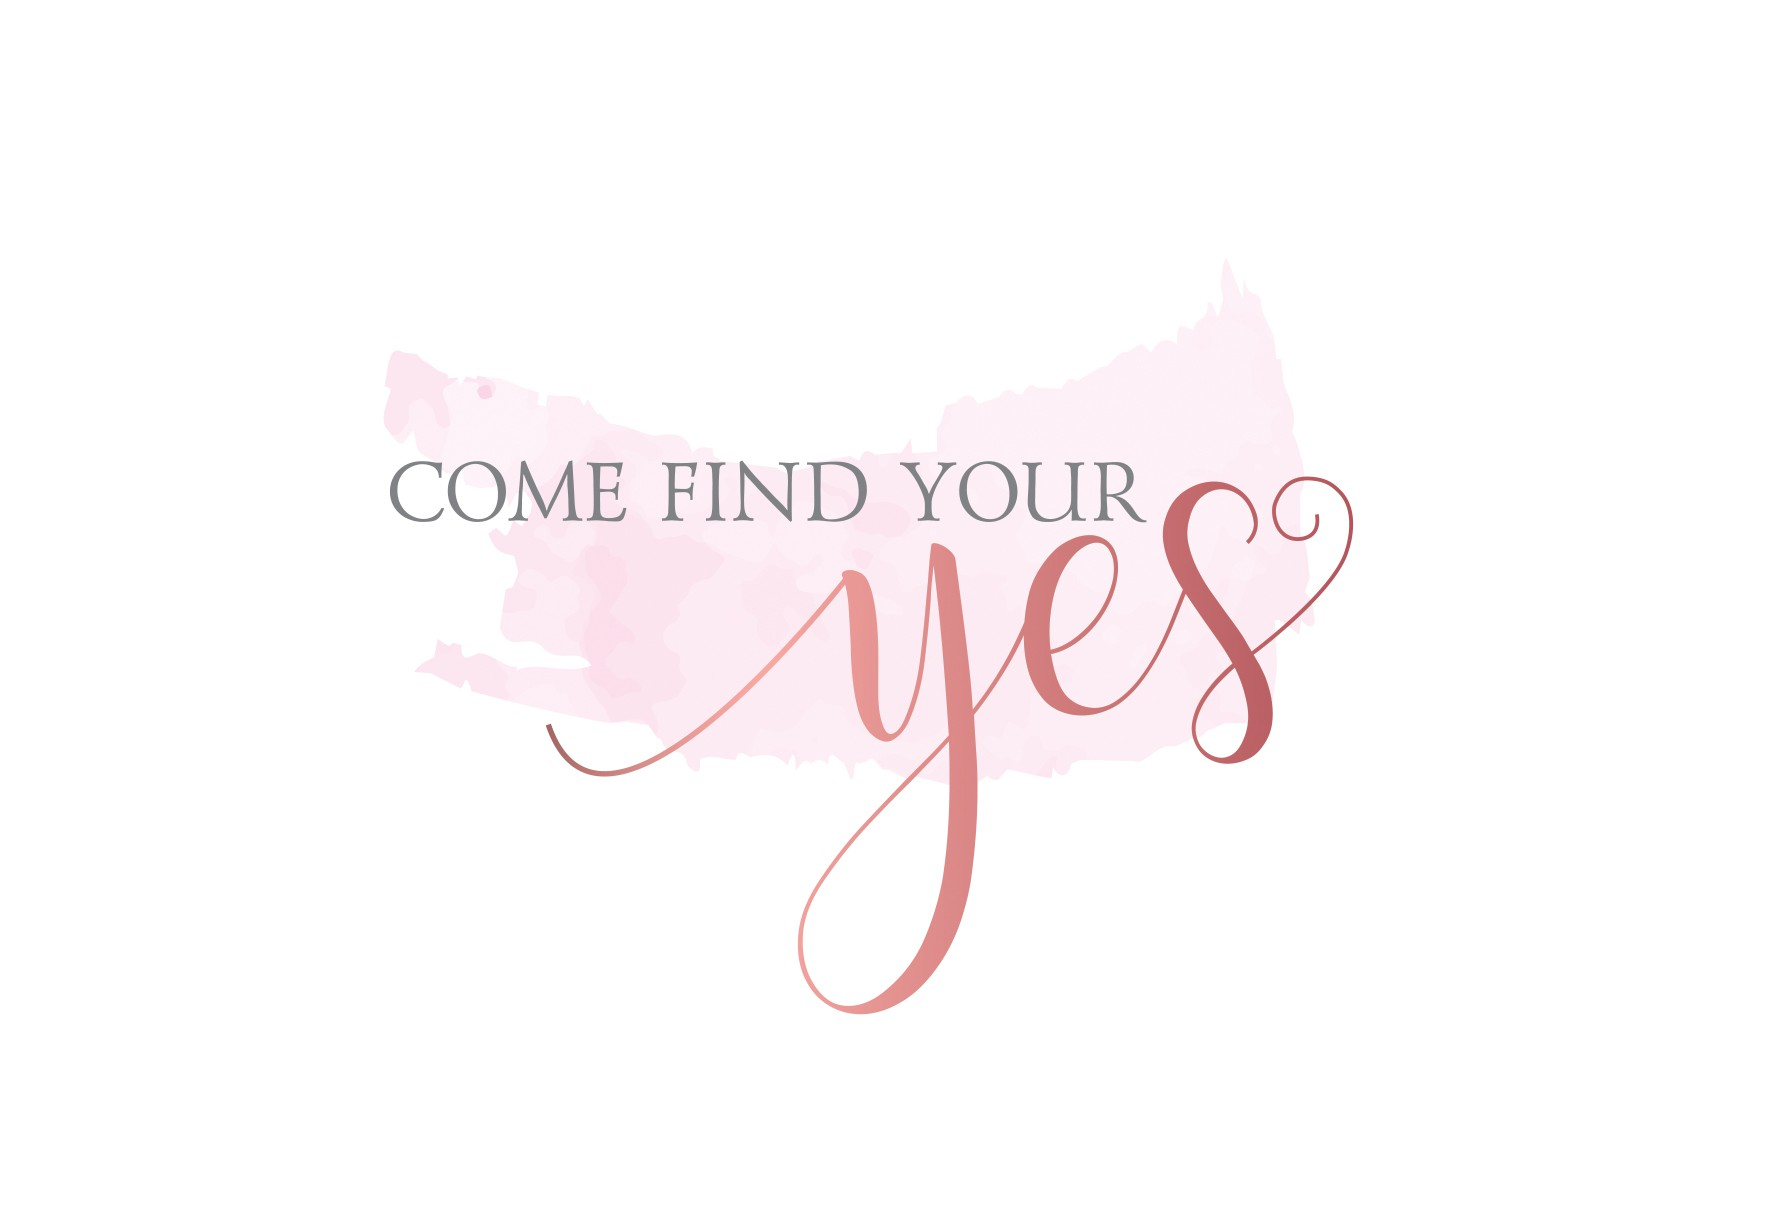 """Come find your """"YES!"""""""